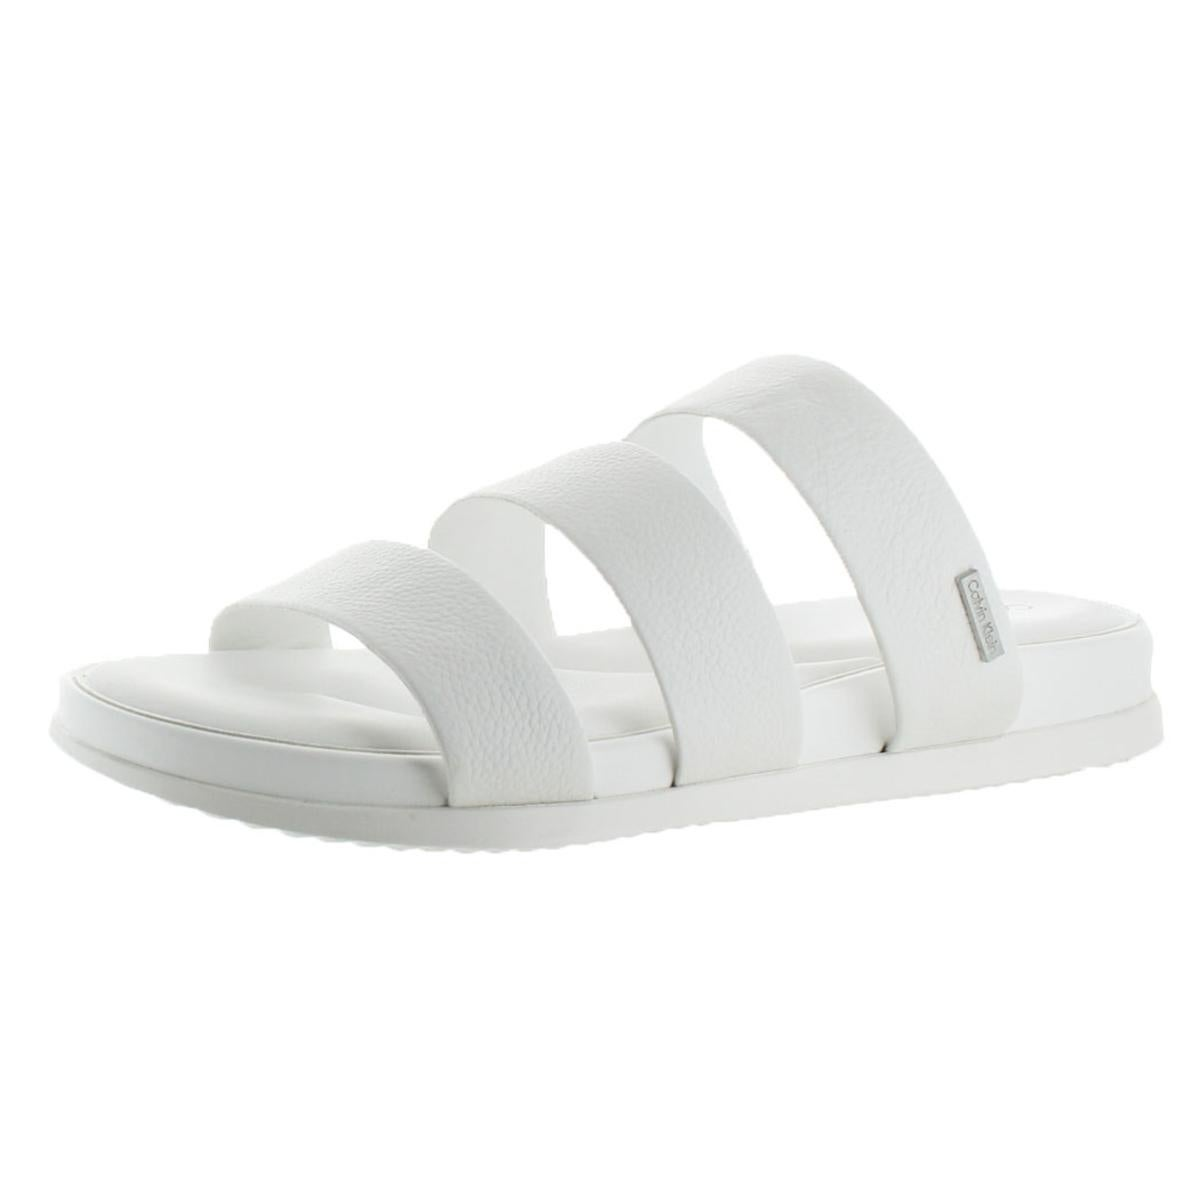 7f0f8561f02 Shop Calvin Klein Womens Dalana Slide Sandals Open Toe Strappy - On Sale -  Free Shipping On Orders Over  45 - Overstock - 21182176